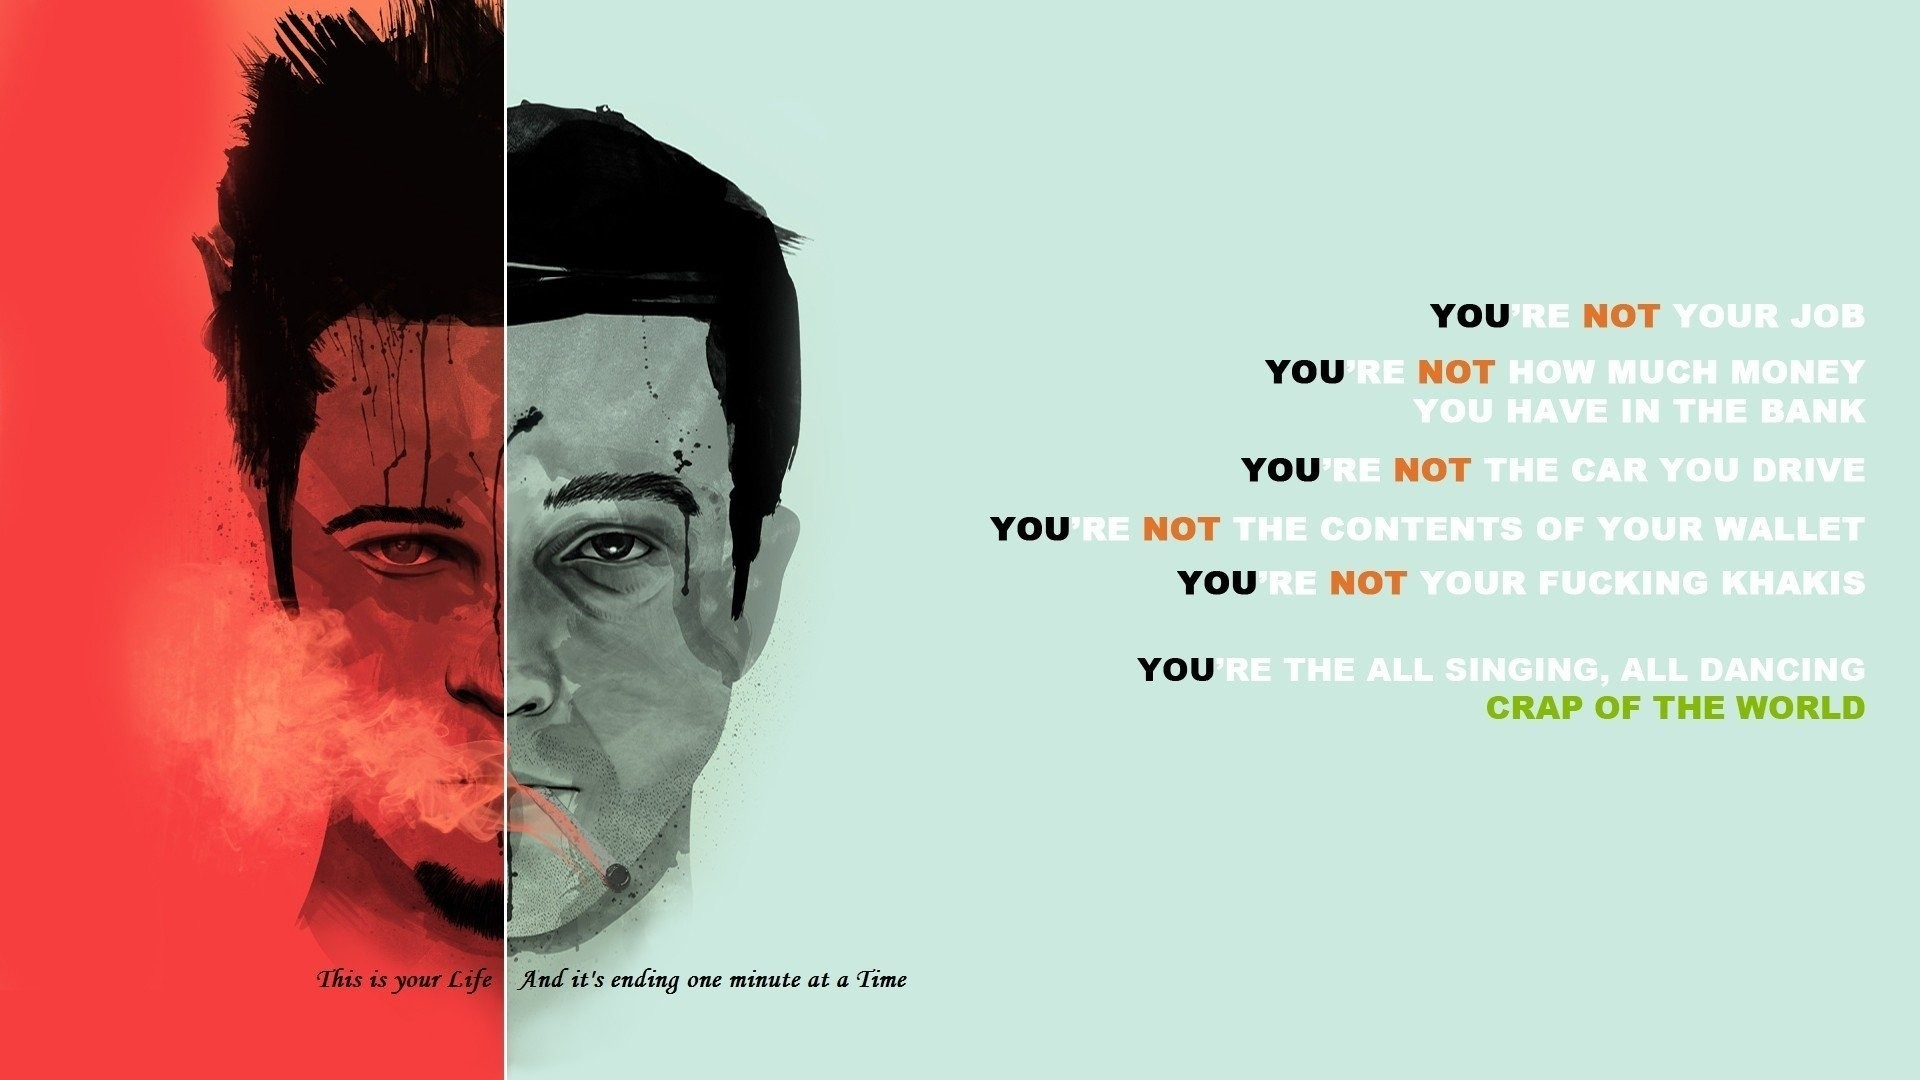 Fight Club Wallpaper Download Free Stunning High Resolution